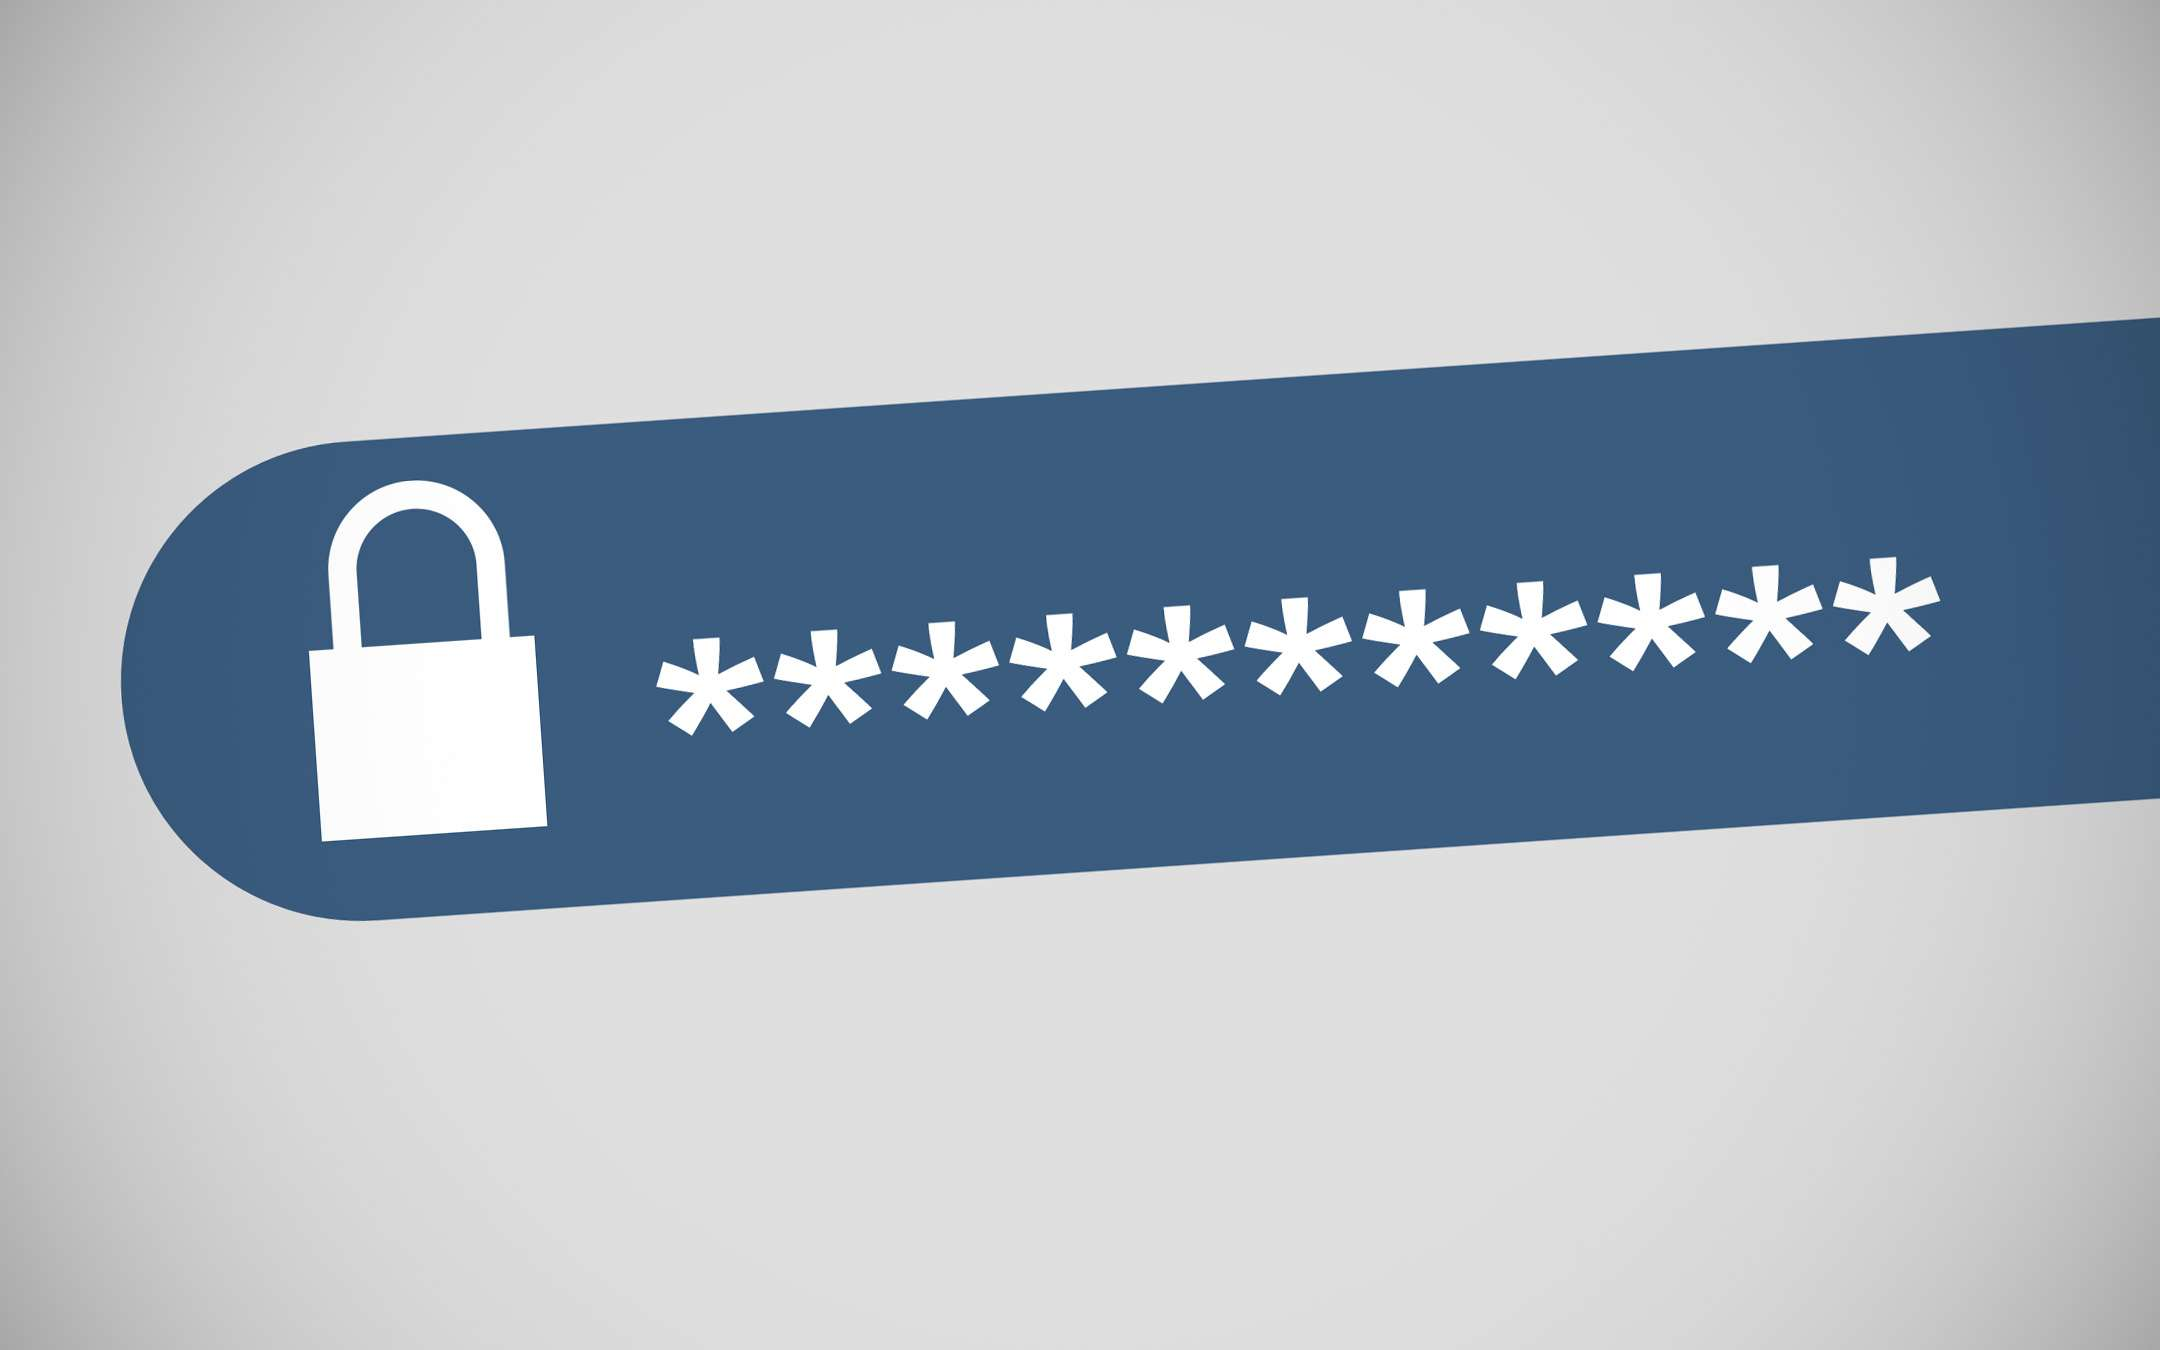 LastPass, 7 trackers found: here's how to inhibit them